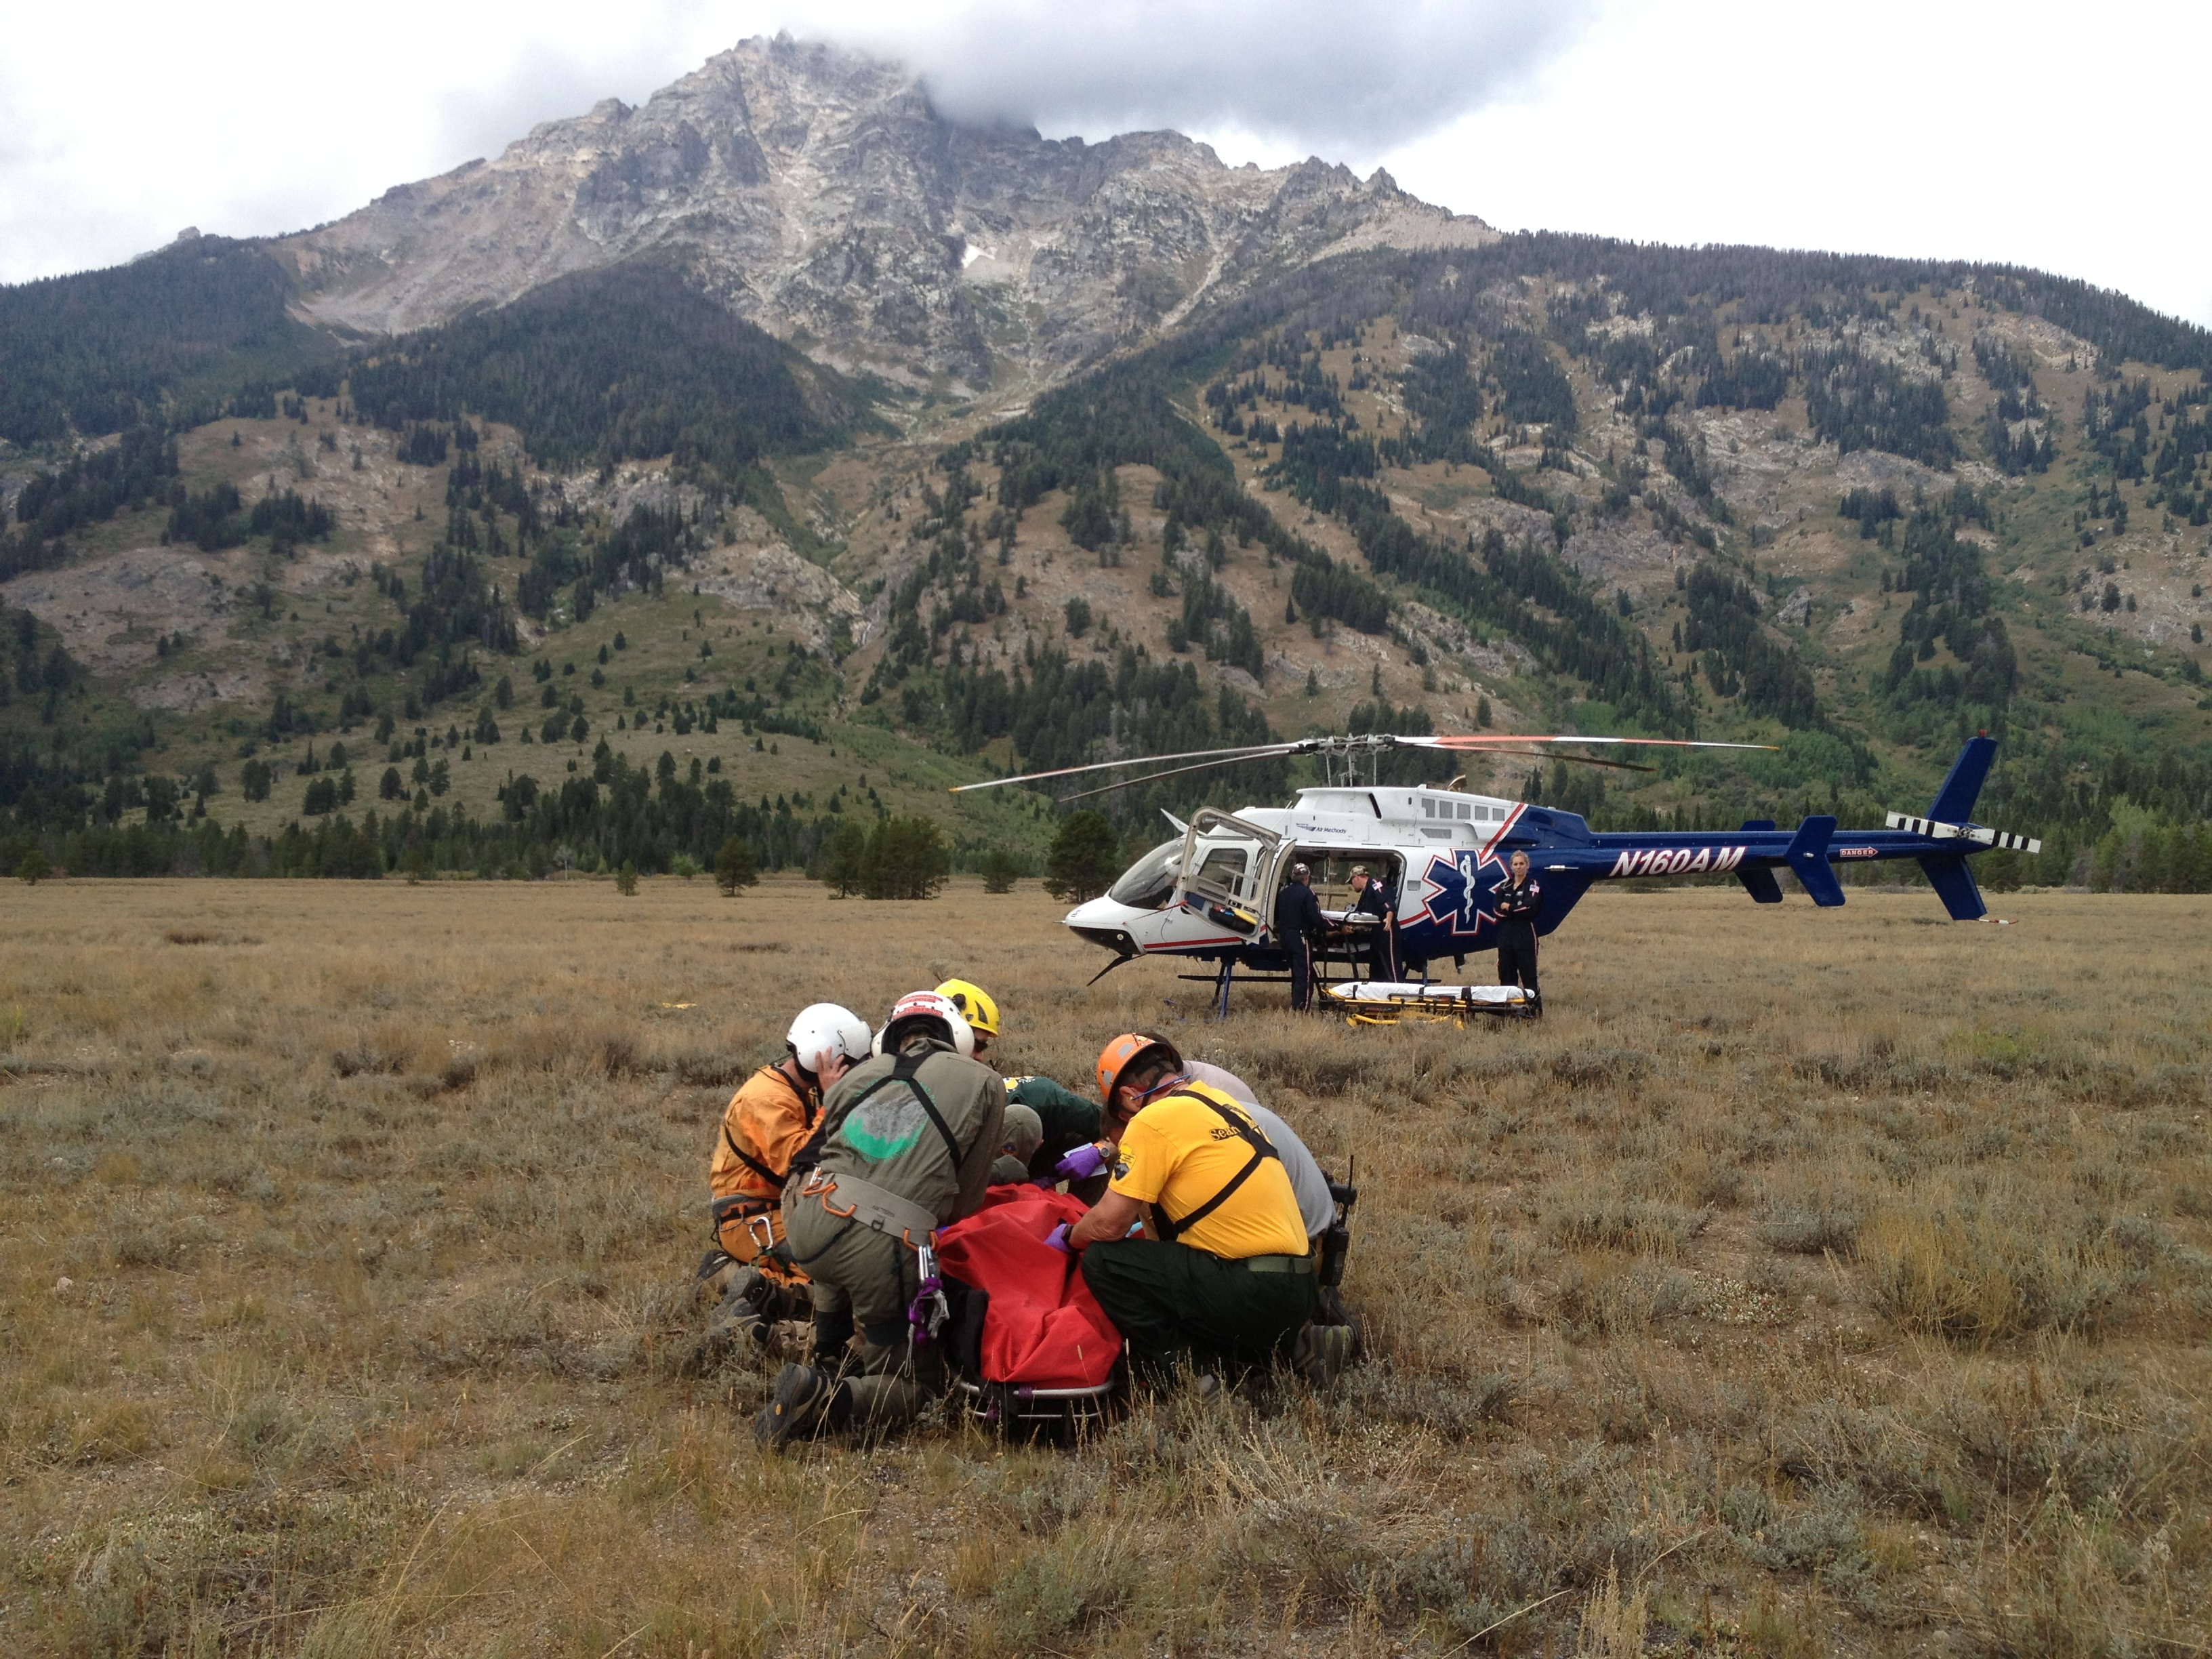 Park Rangers attend to White before loading him into a lifeflight helicopter